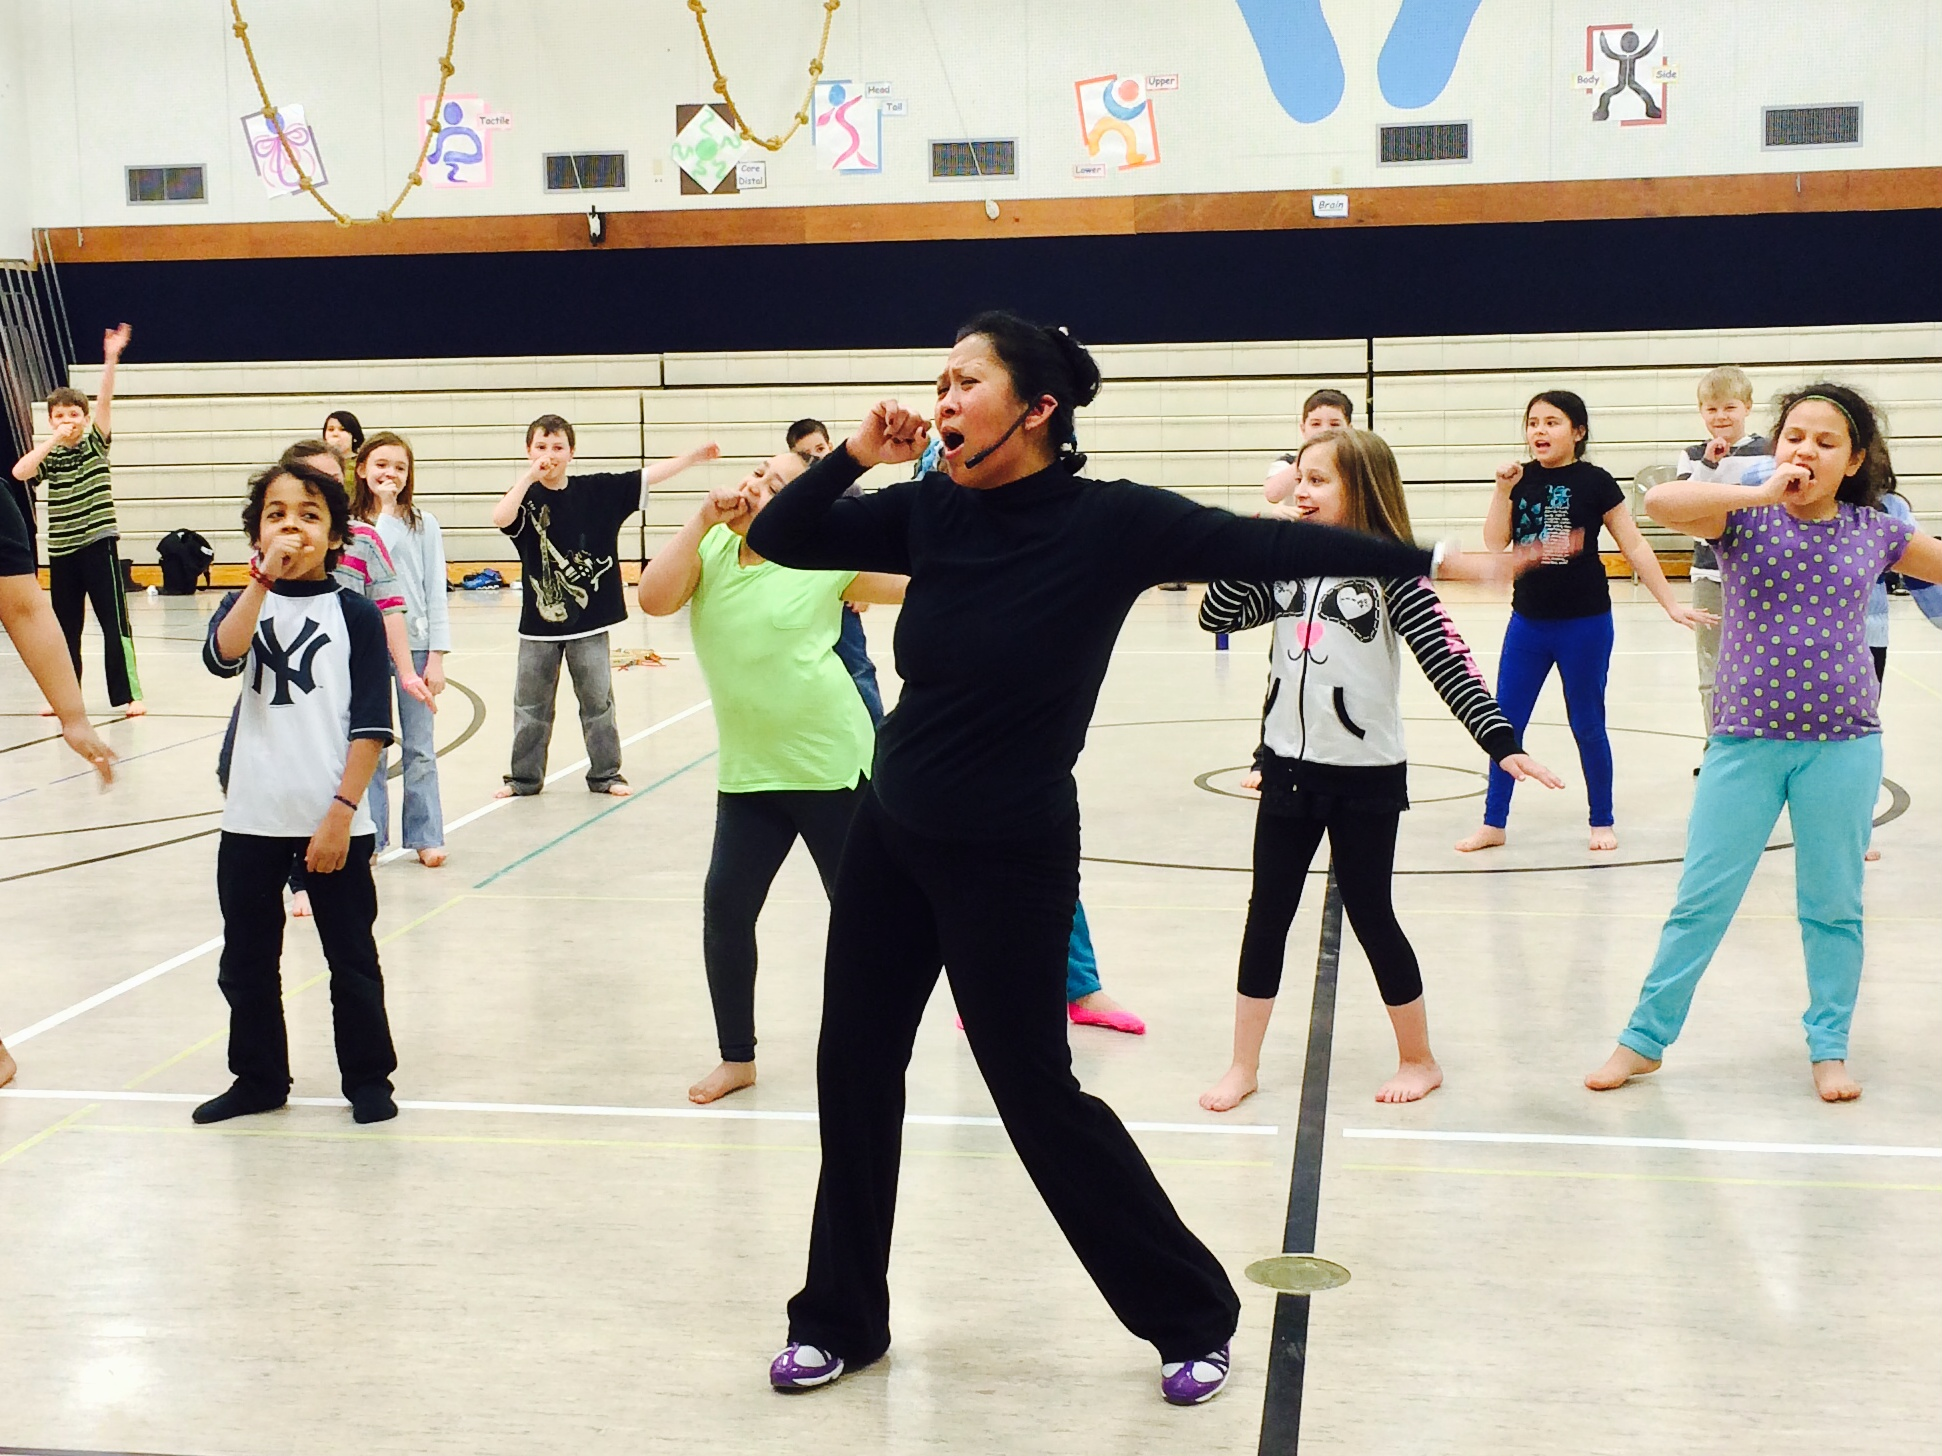 Ricci Adan works with students in the JAMM school musical program. (Photo courtesy Karen Allen)